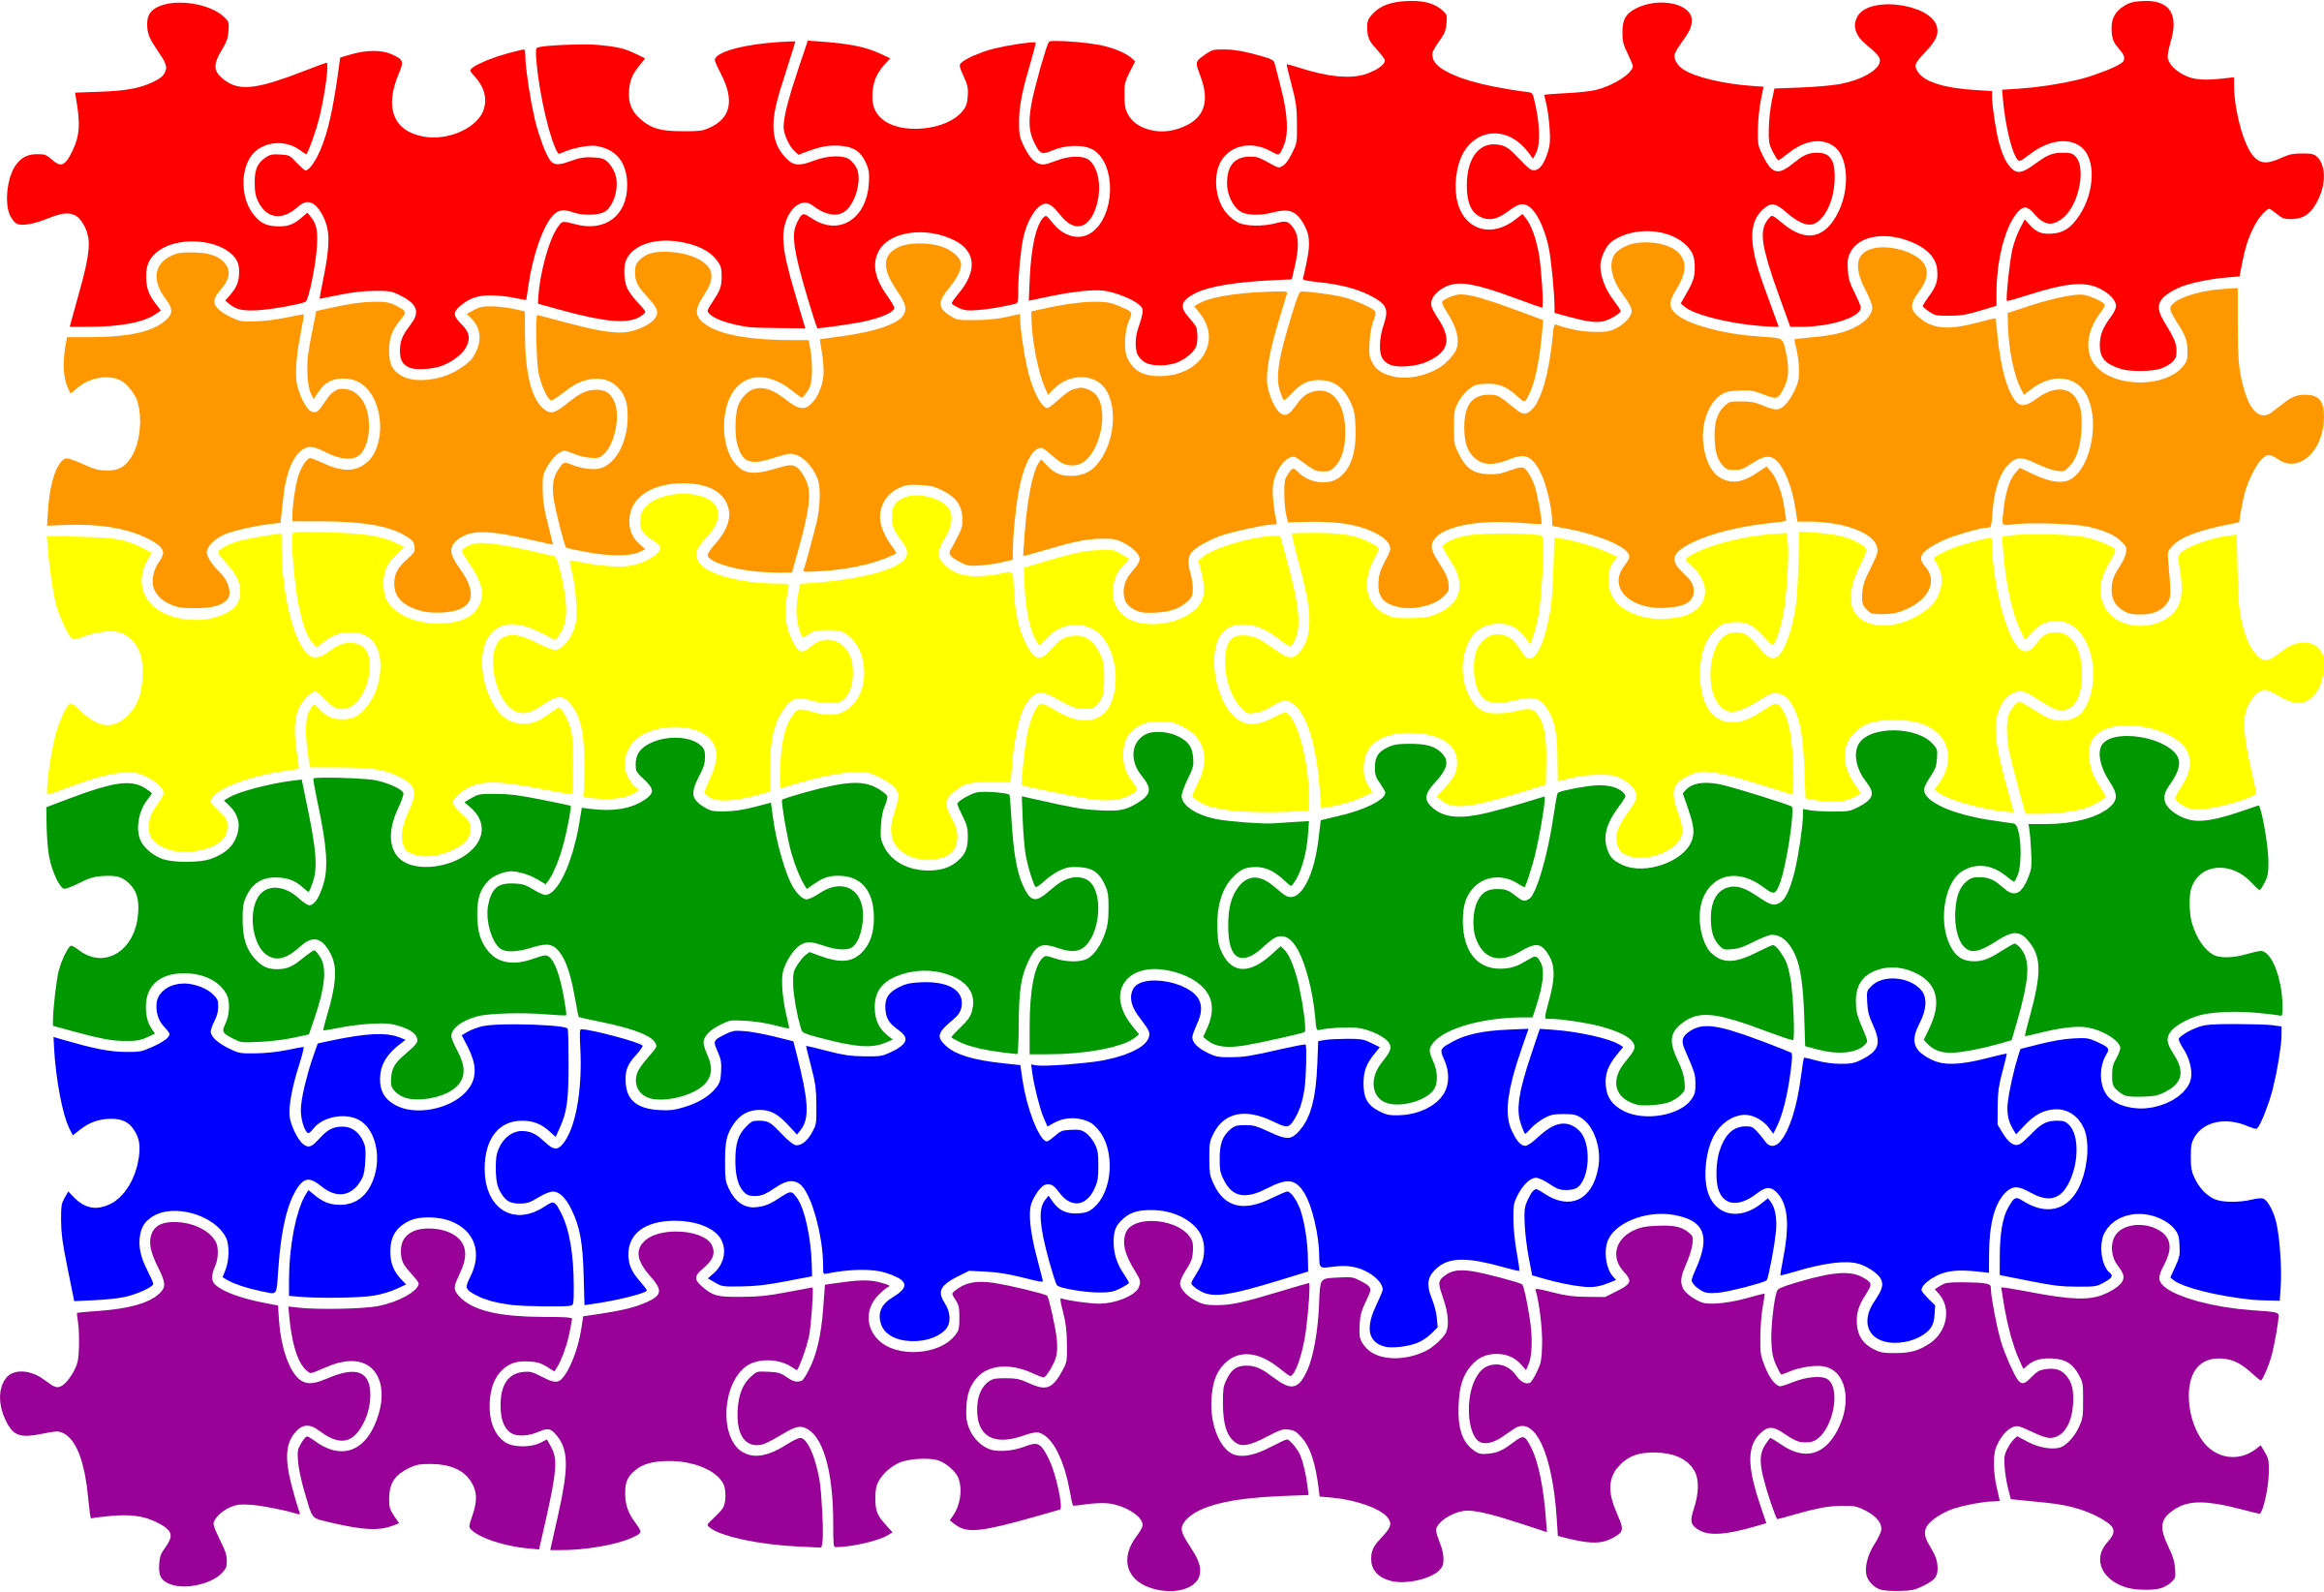 Rainbow flag jigsaw by Firkin